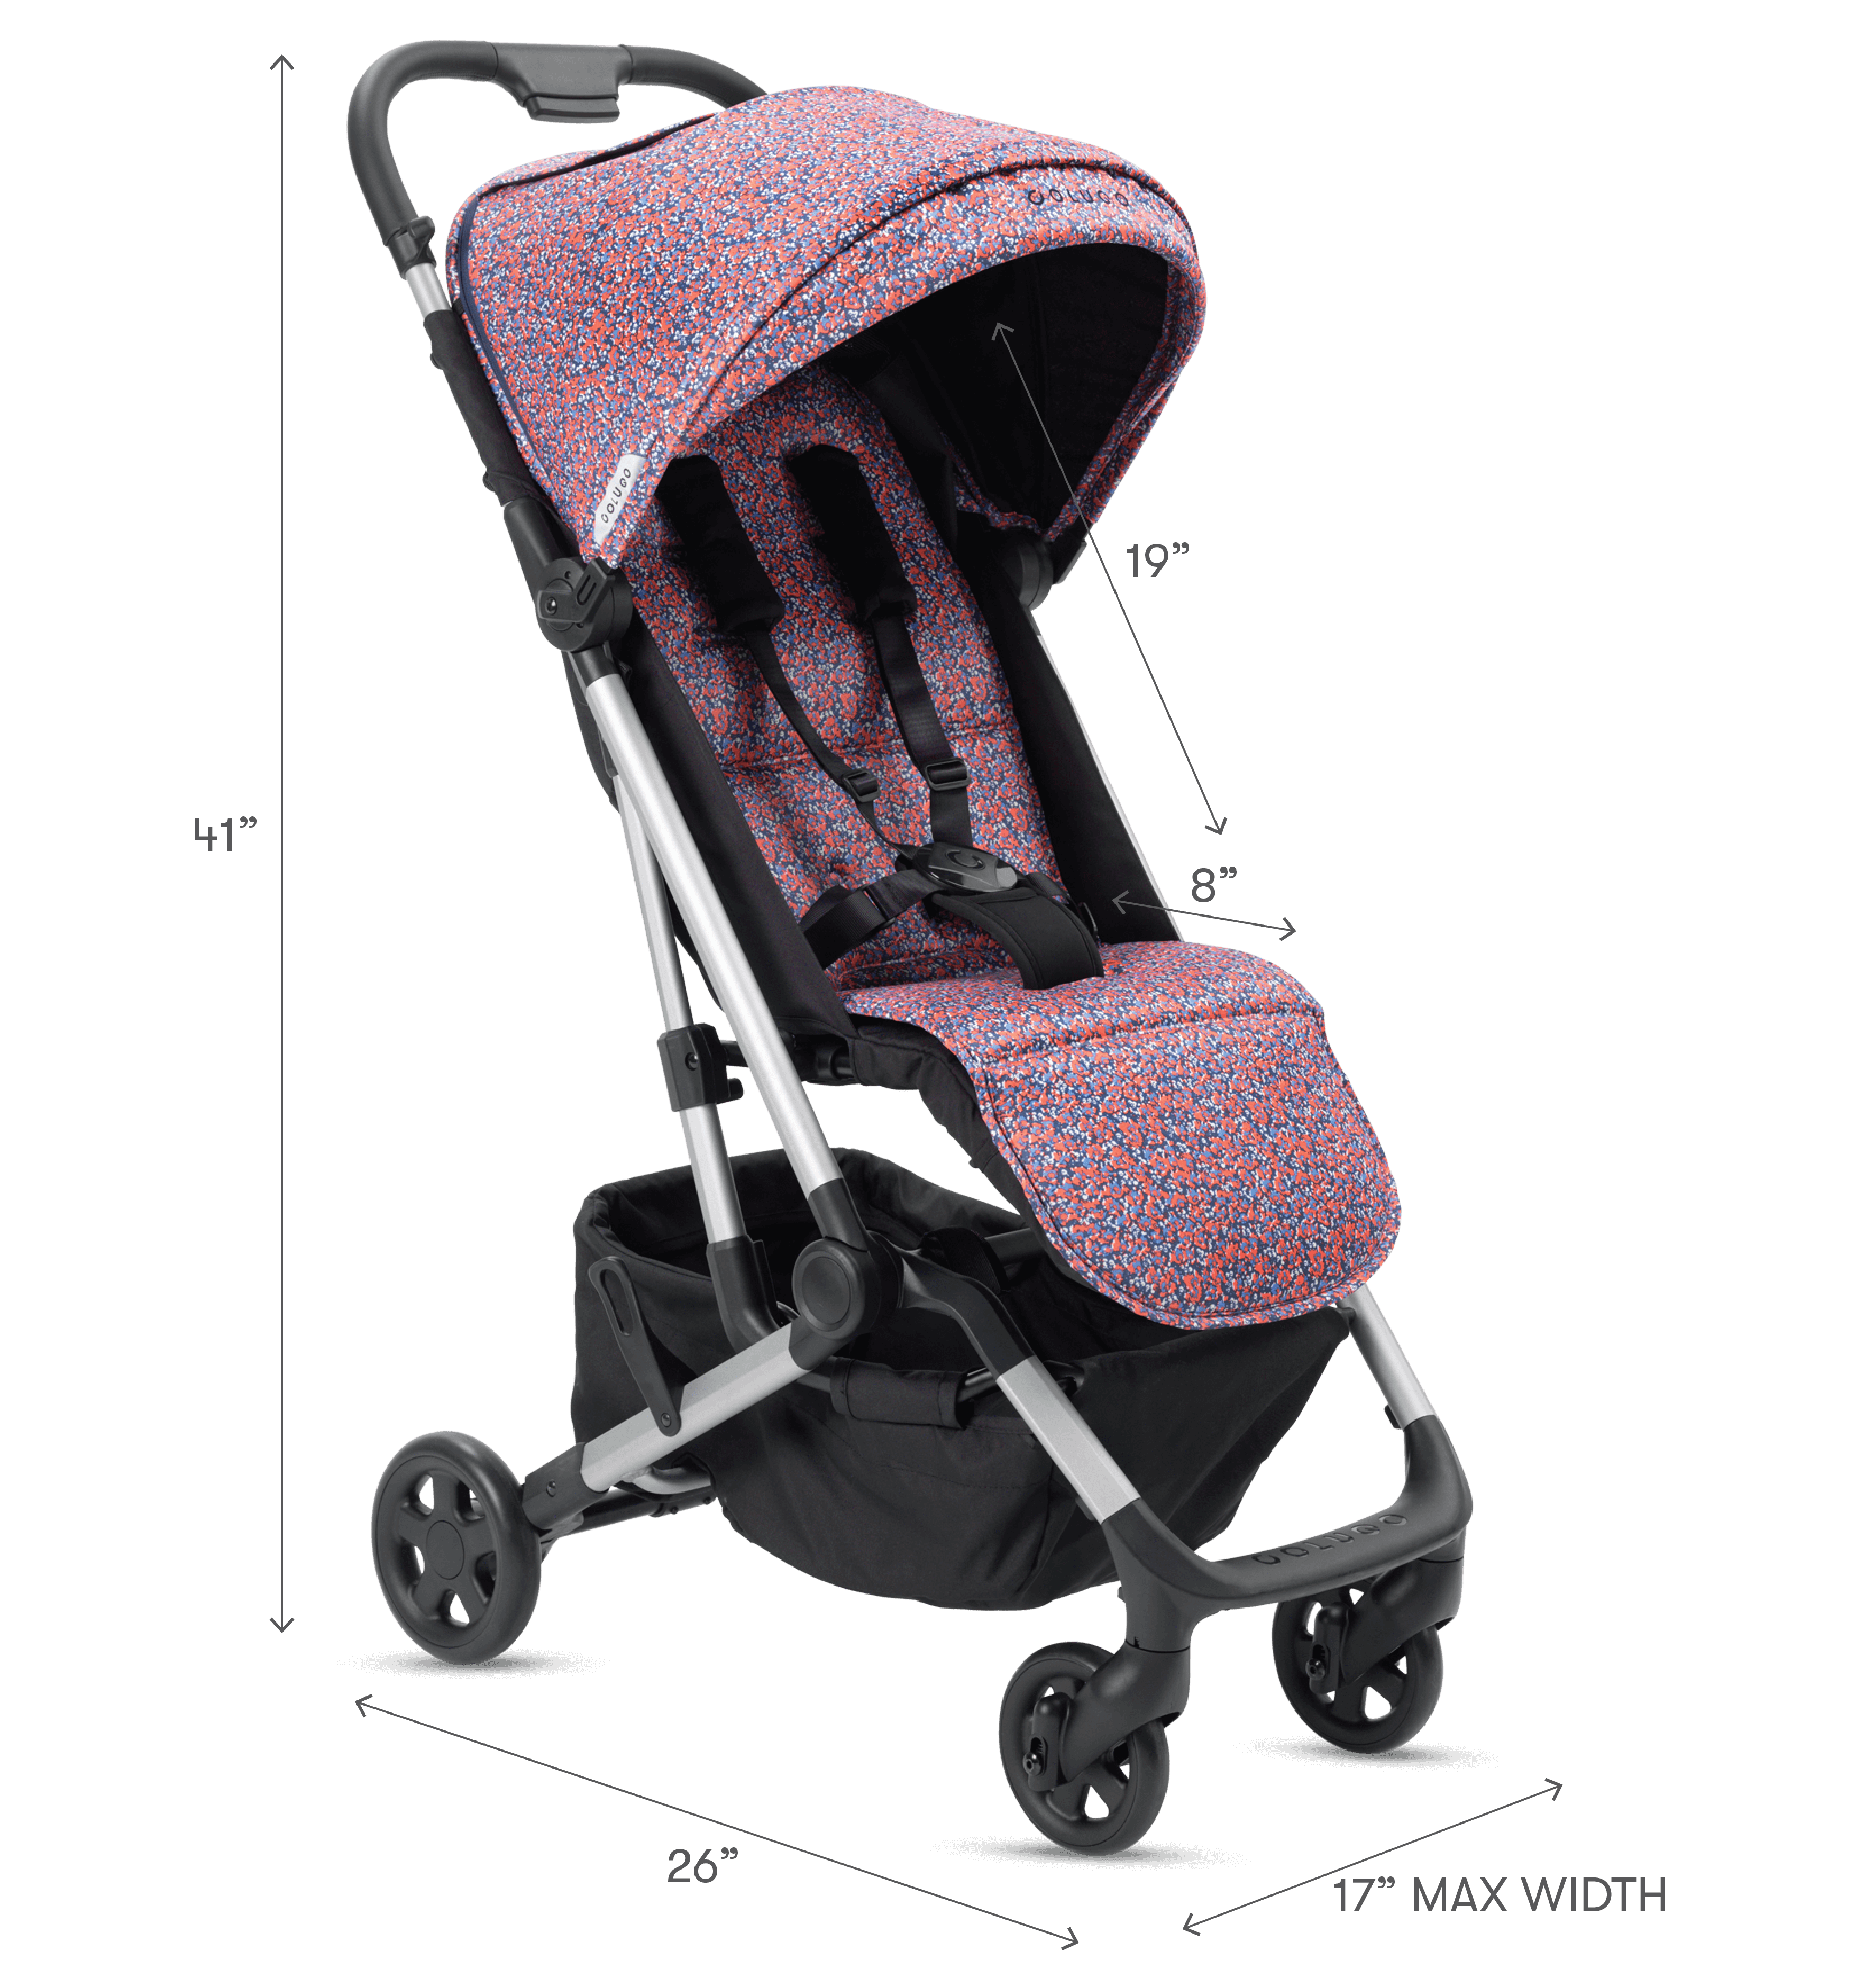 The Compact Stroller Black Compact strollers, Stroller